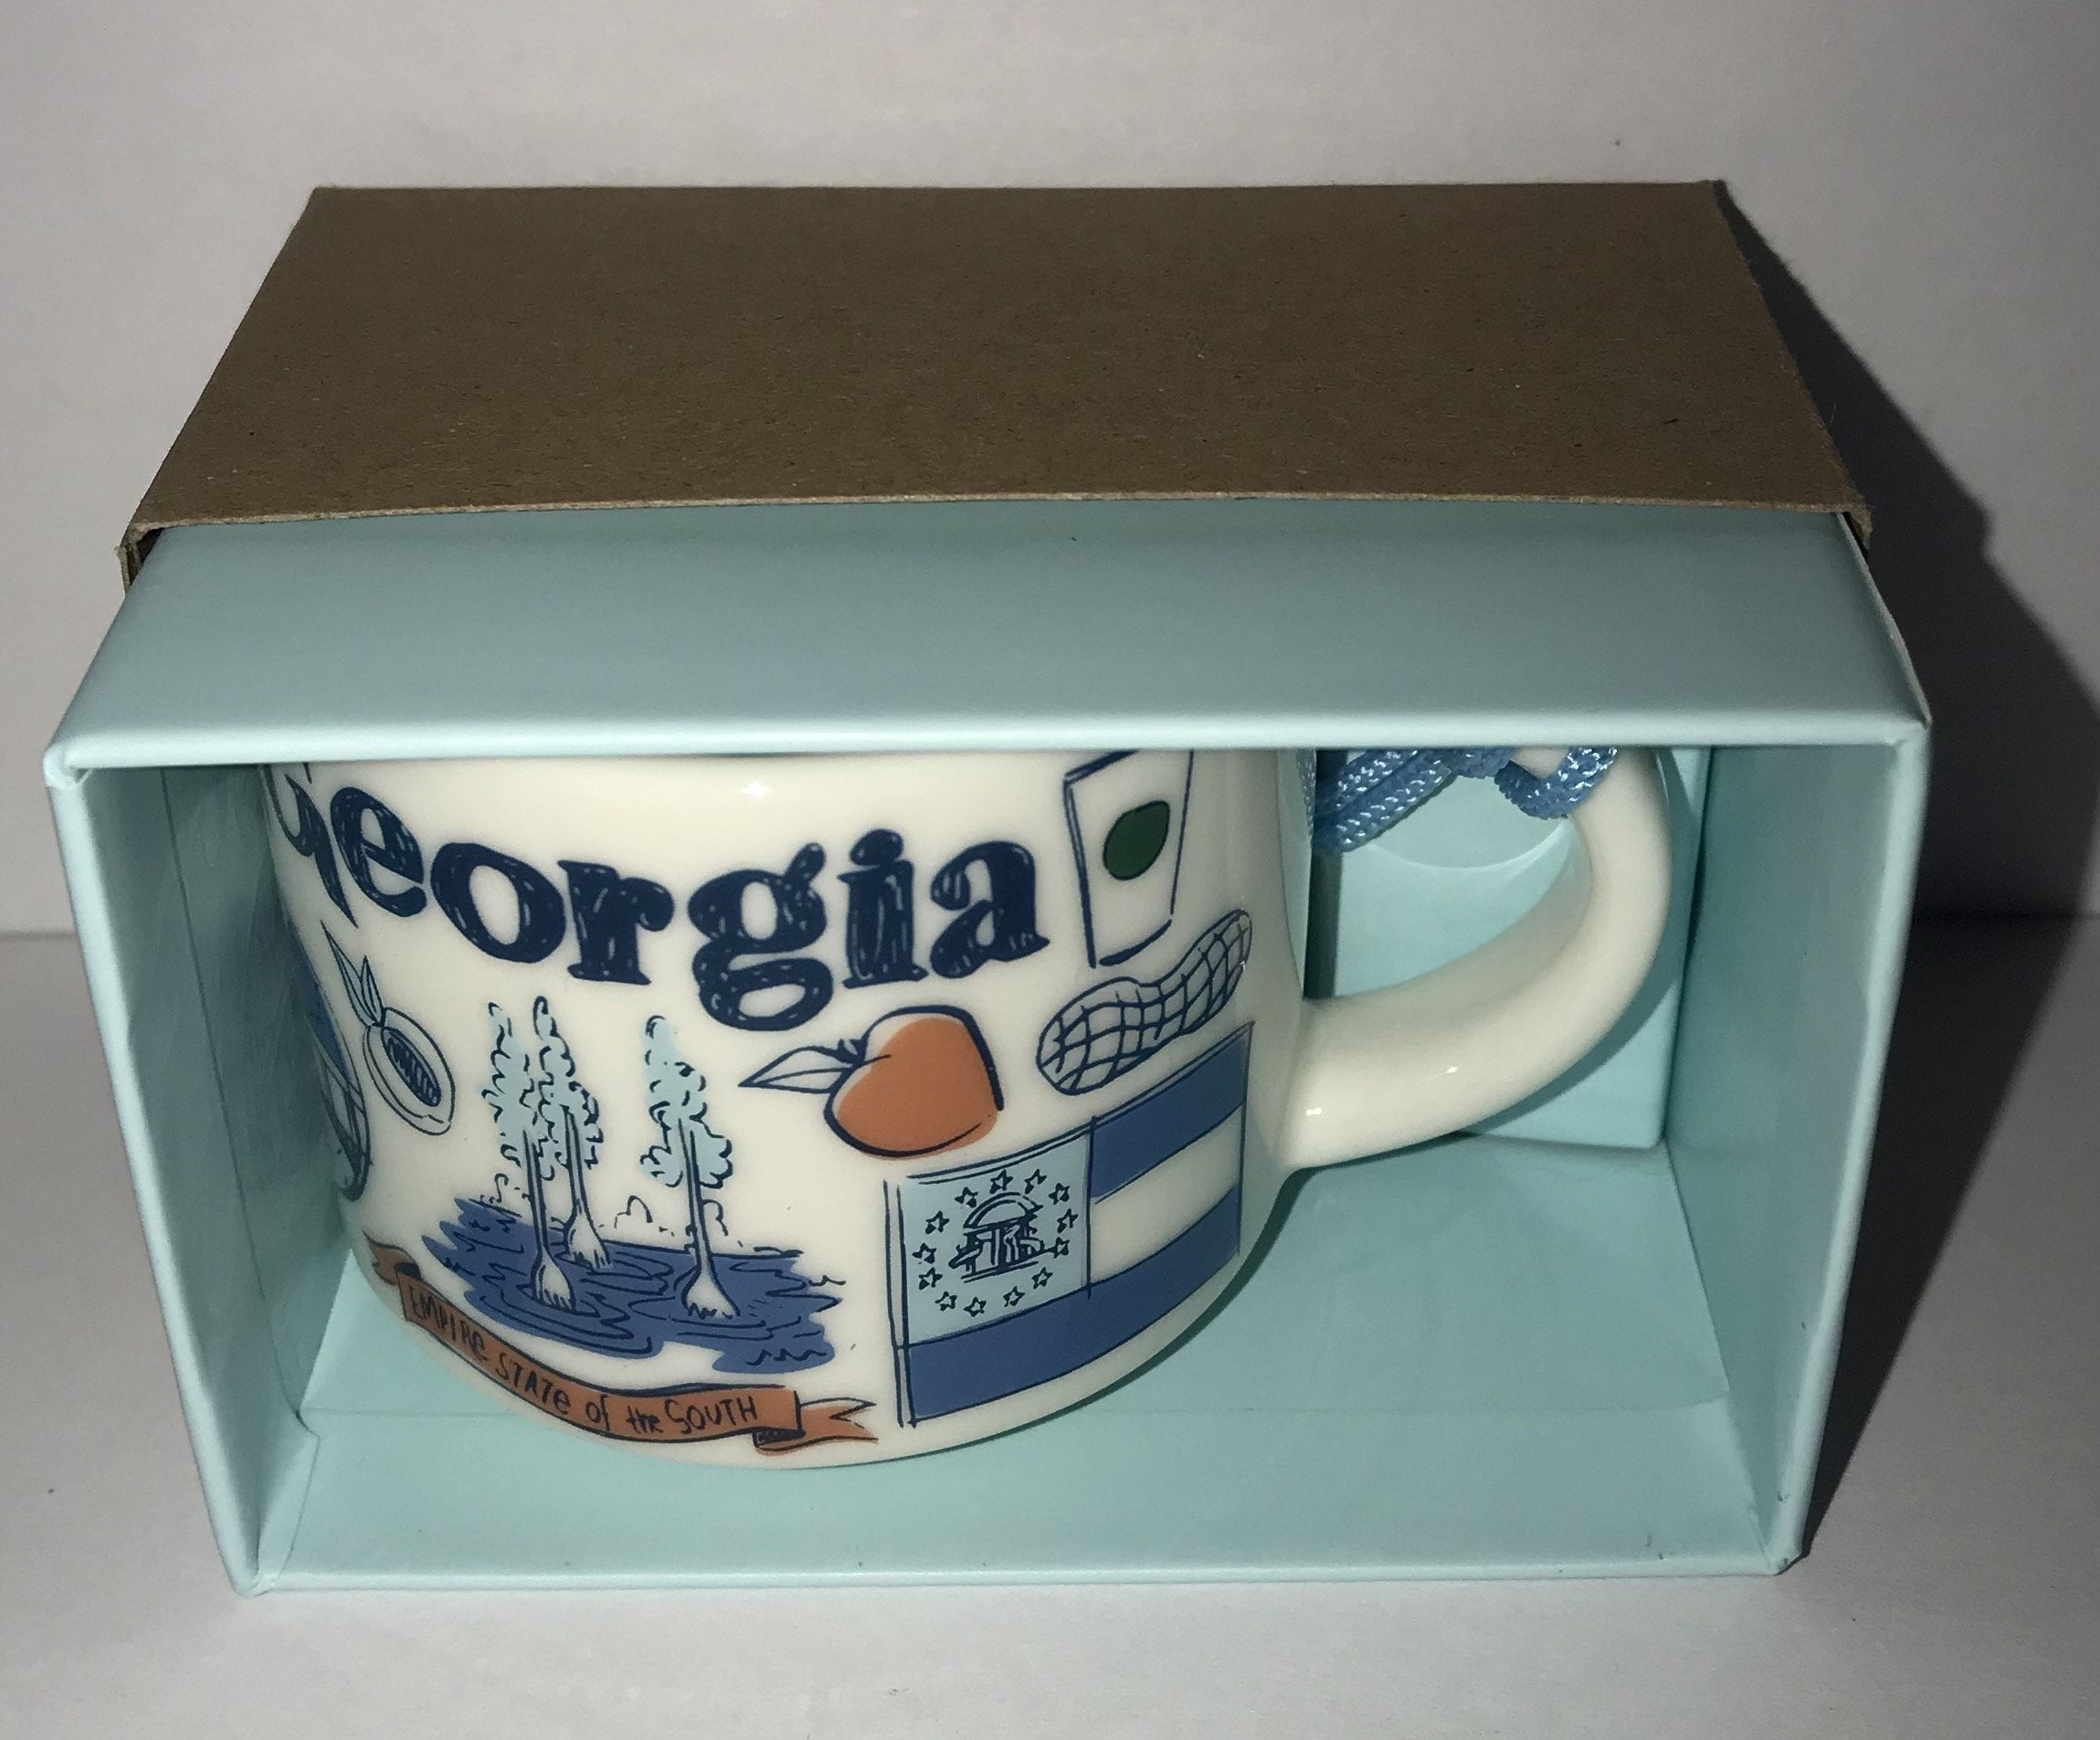 Starbucks Coffee Been There Georgia Ceramic Mug Ornament New With Box Walmart Com Walmart Com